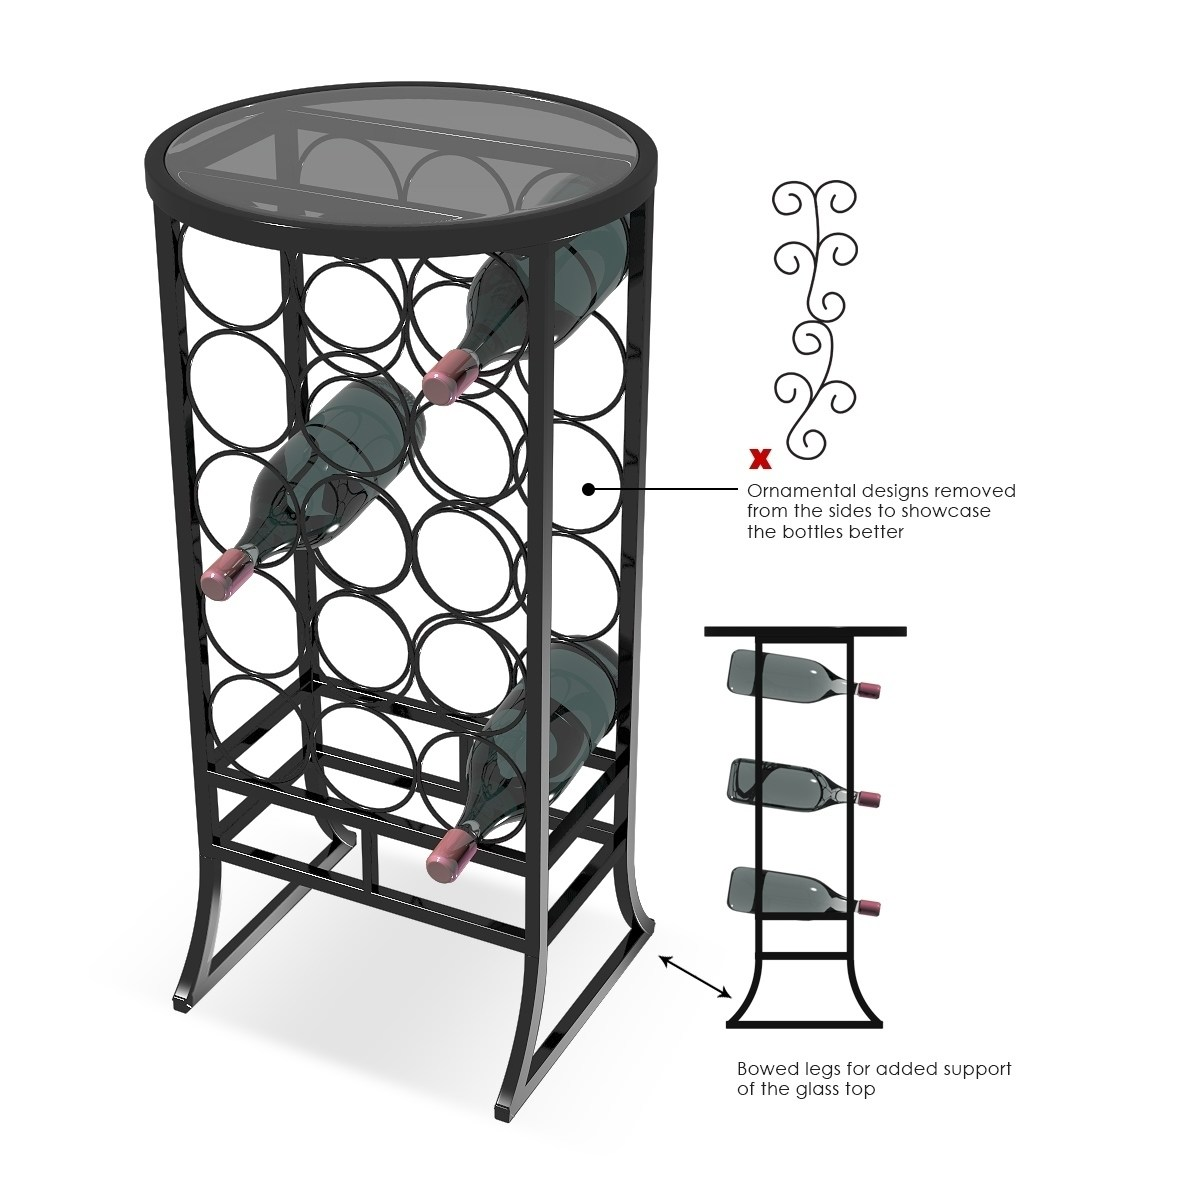 Small Wine Stand Sorbus Wine Rack Stand Glass Table Top 18 Bottles Wine Storage Organizer Display Rack Table For Dining Room Kitchen Wine Cellar Bar And More